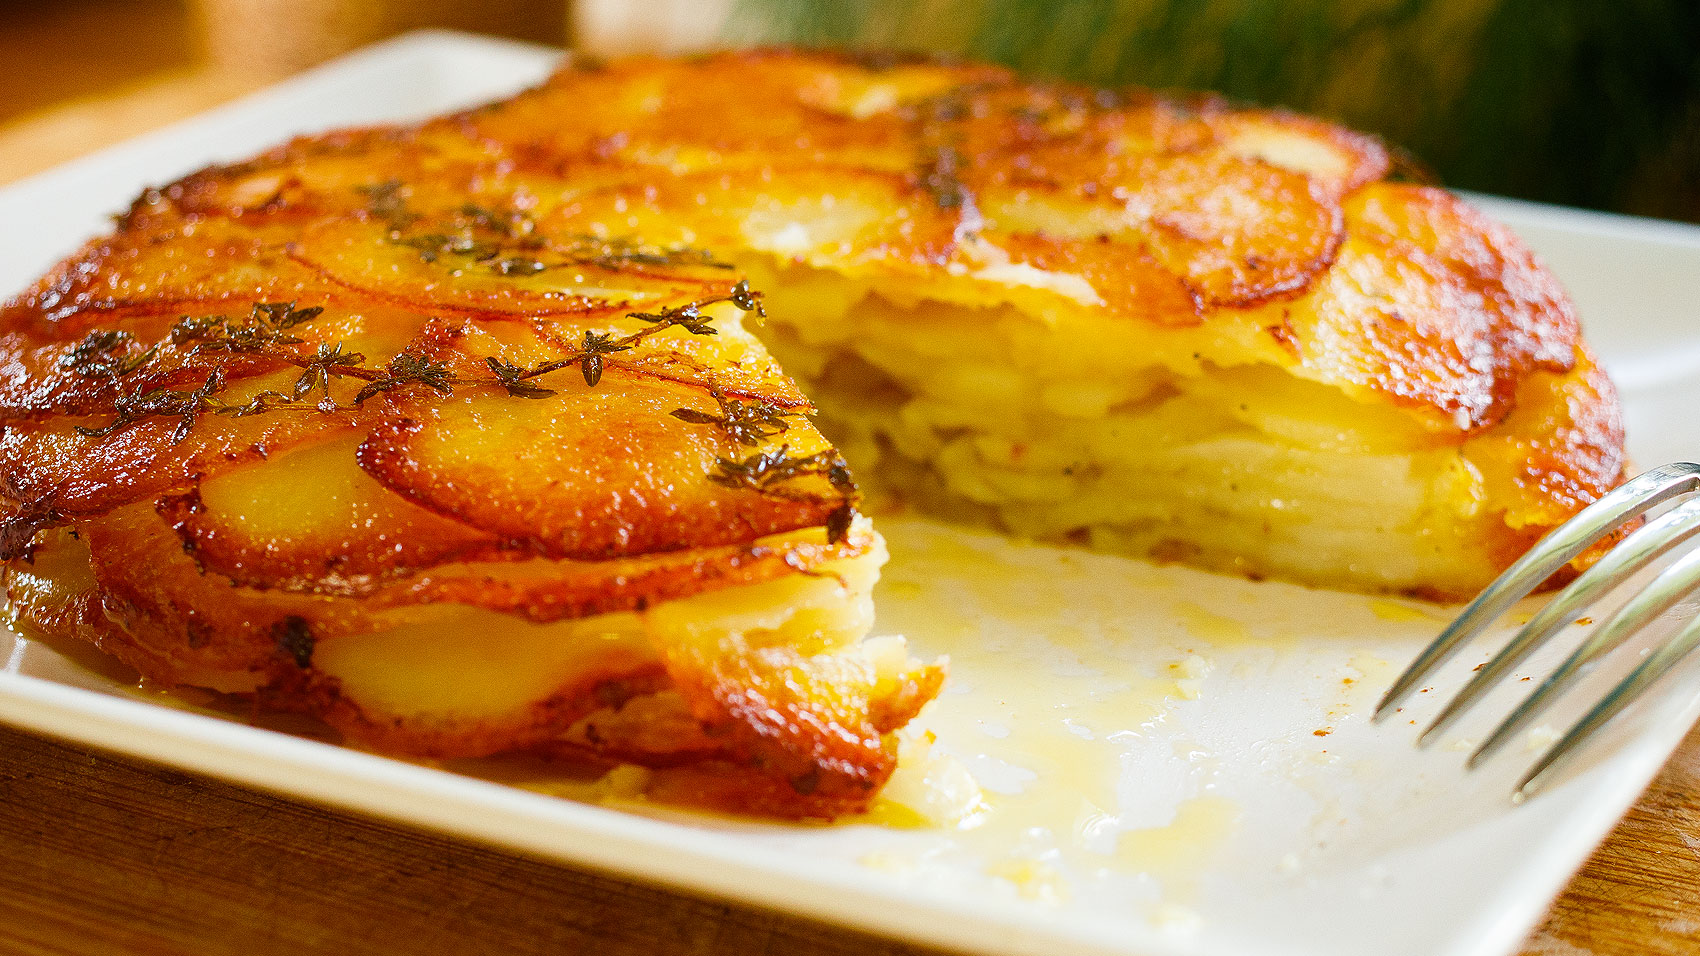 Pommes Anna Easy Meals With Video Recipes By Chef Joel Mielle Recipe30